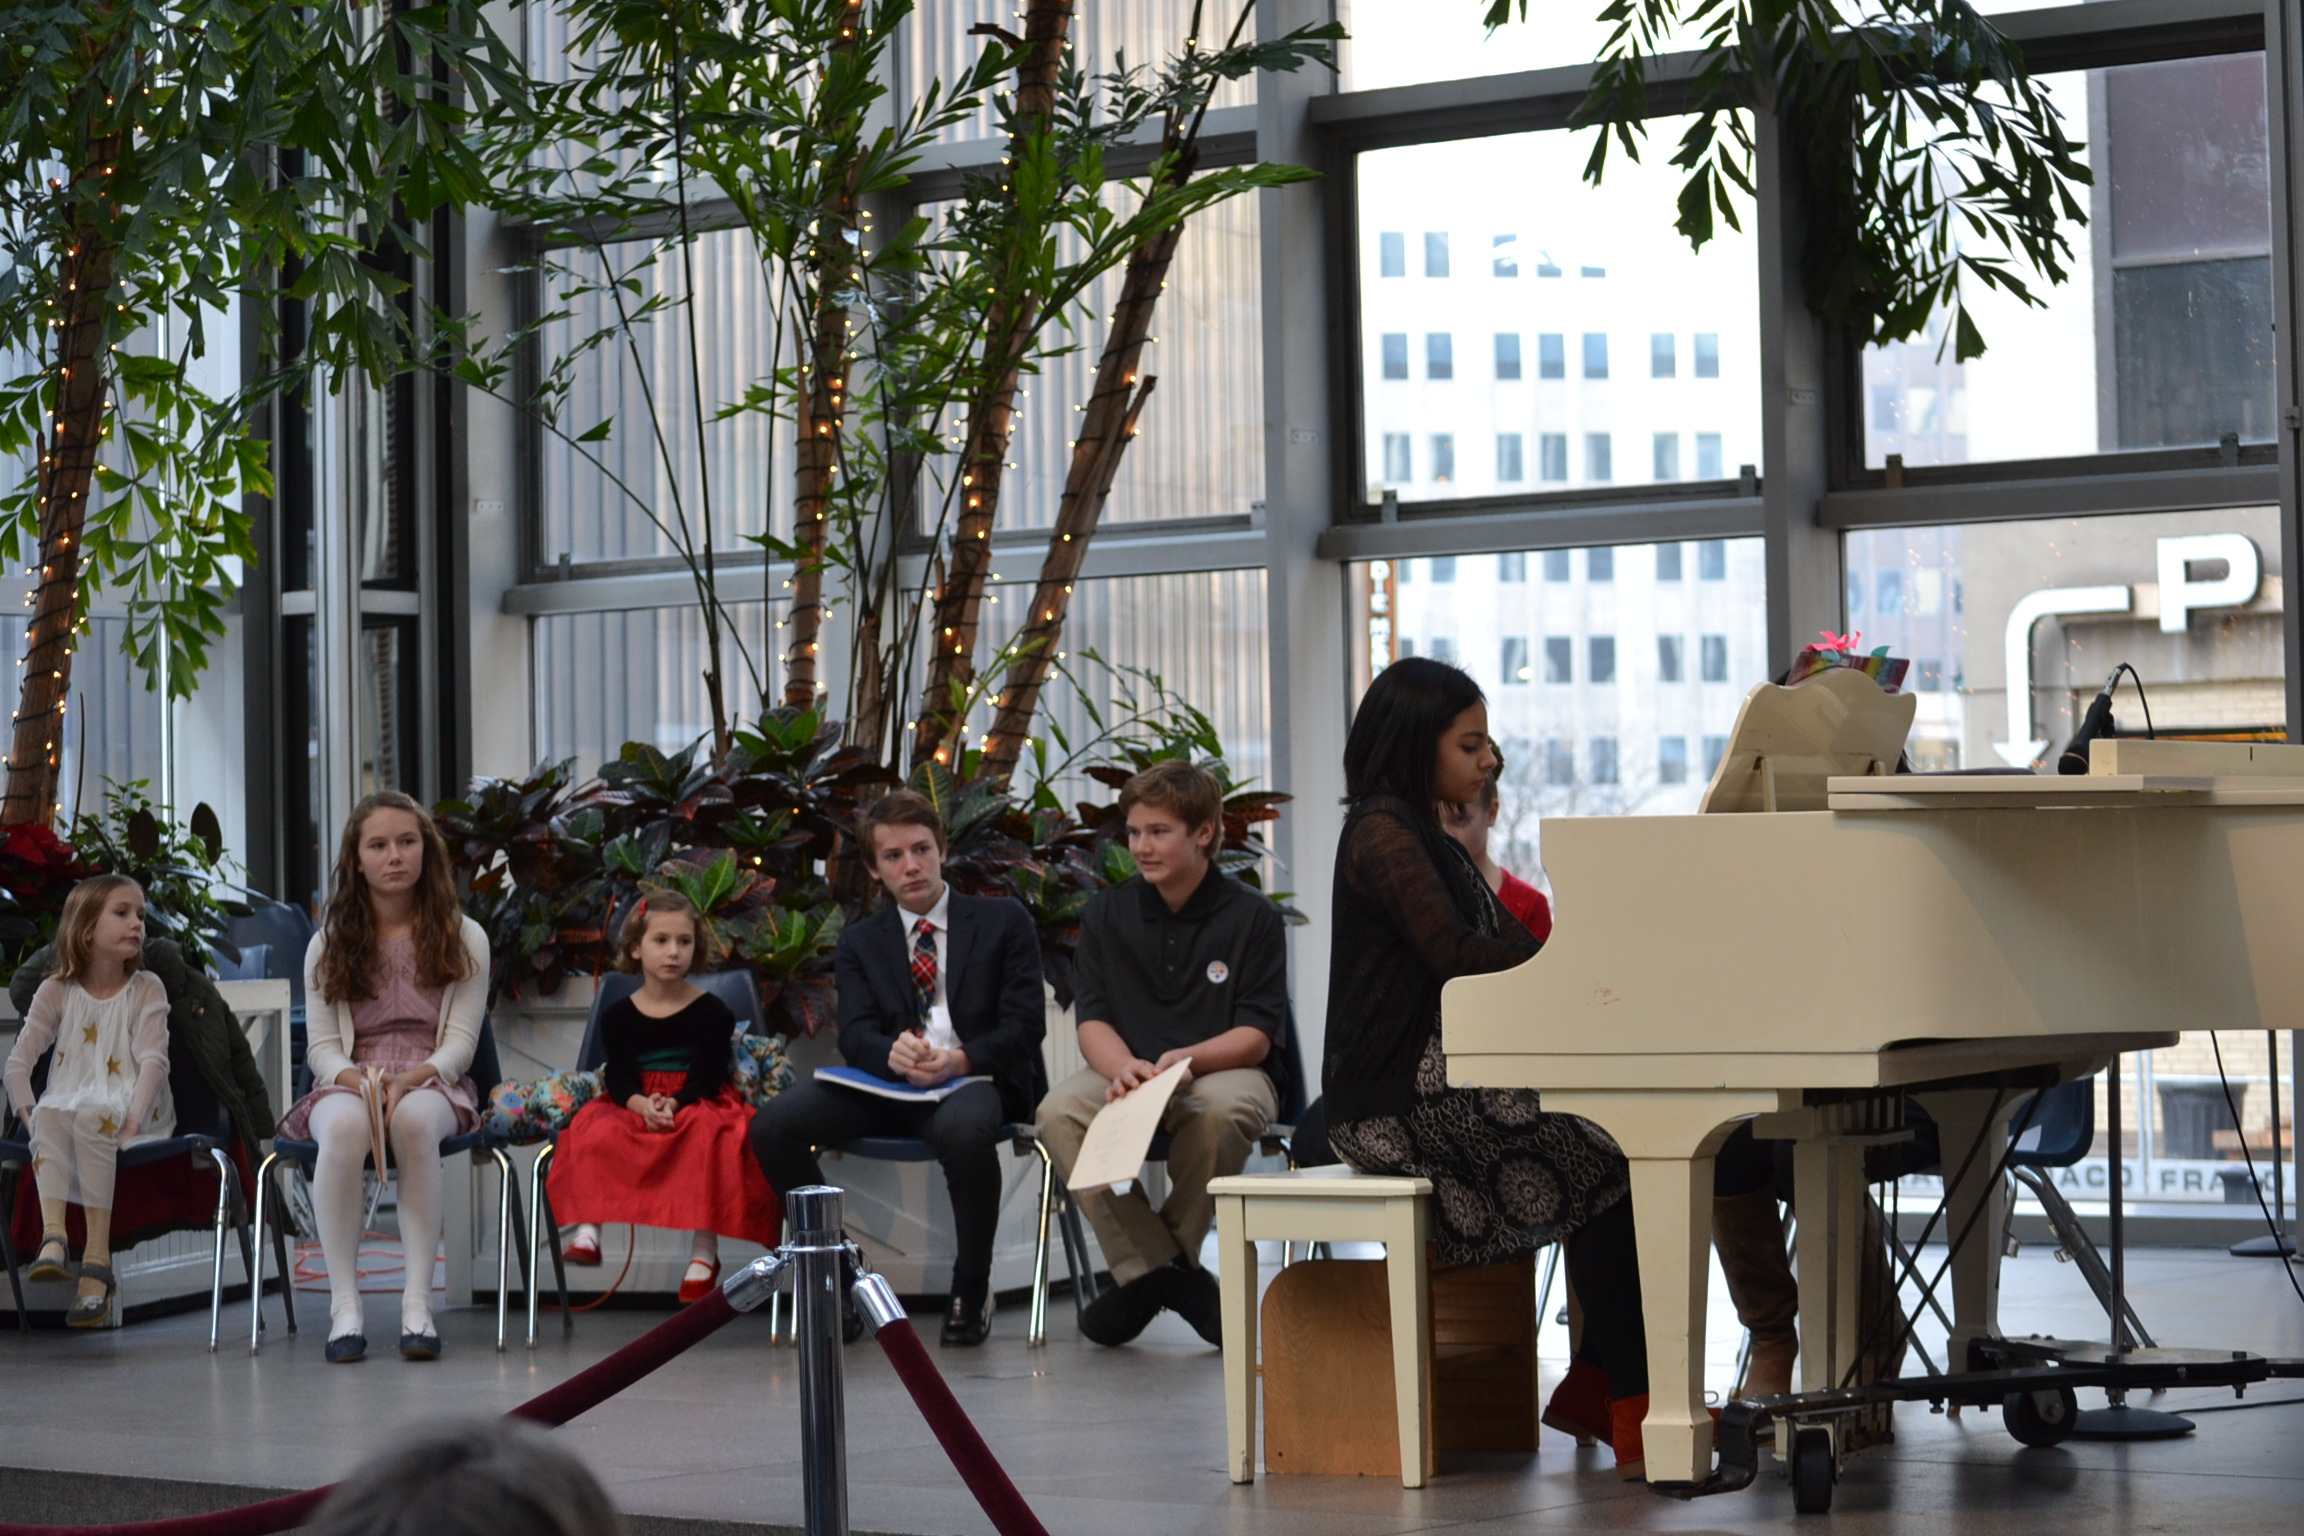 More of the lovely Wintergarden performers